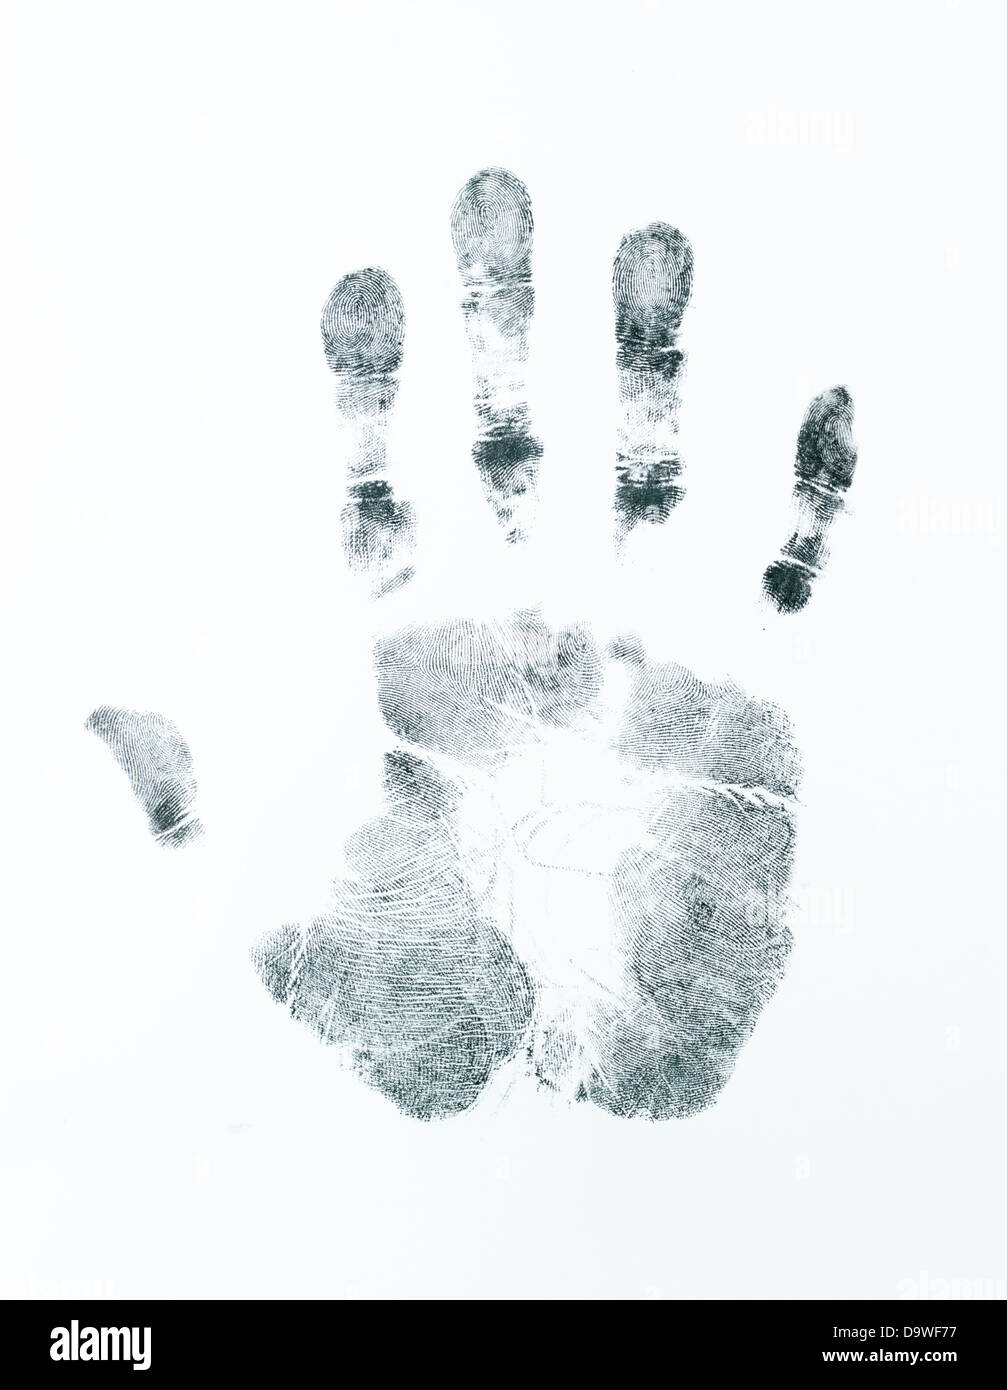 image of a right palm print on a white sheet - Stock Image